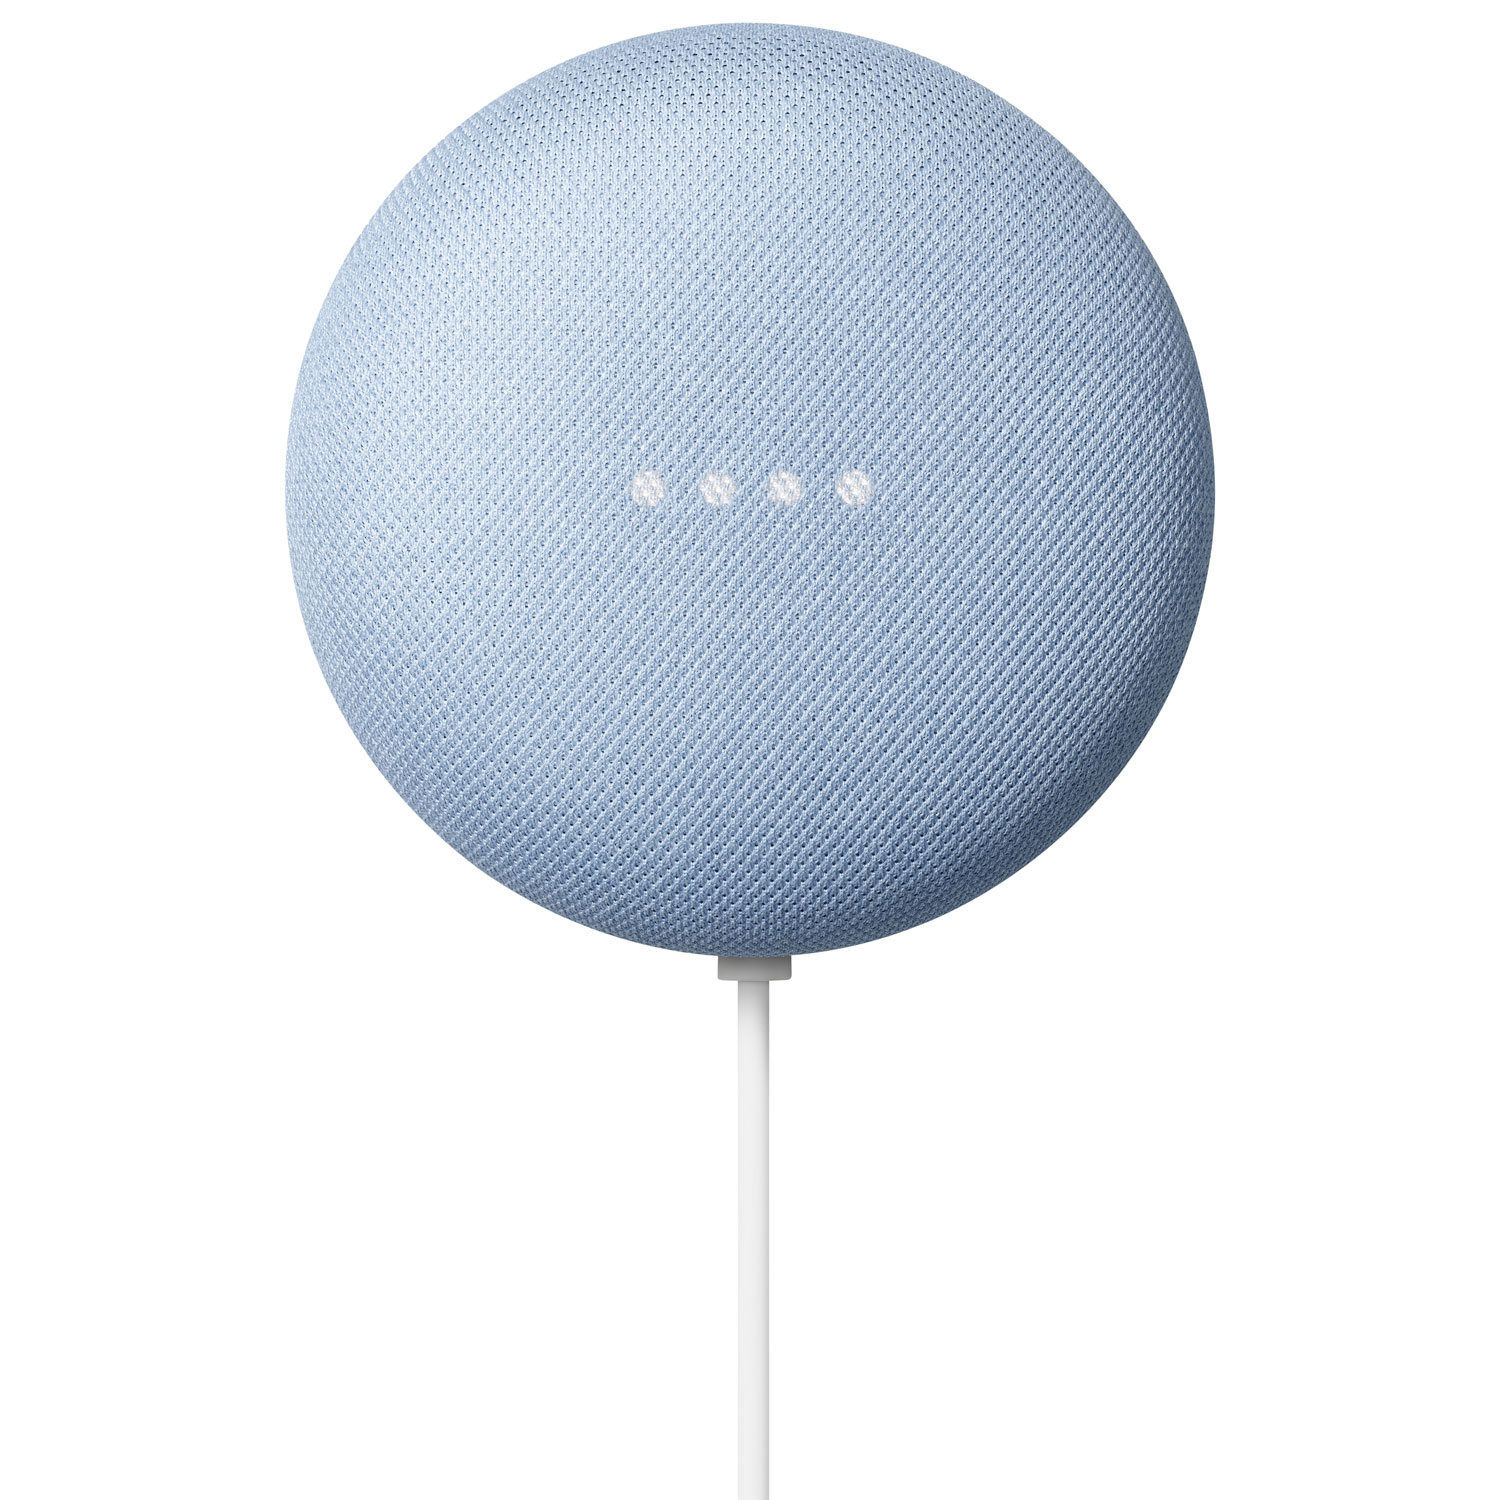 Google Nest Mini - WorkwearToronto.com - Best Gift Ideas For him - Christmas Gift Ideas For men in 2020 - Amazon